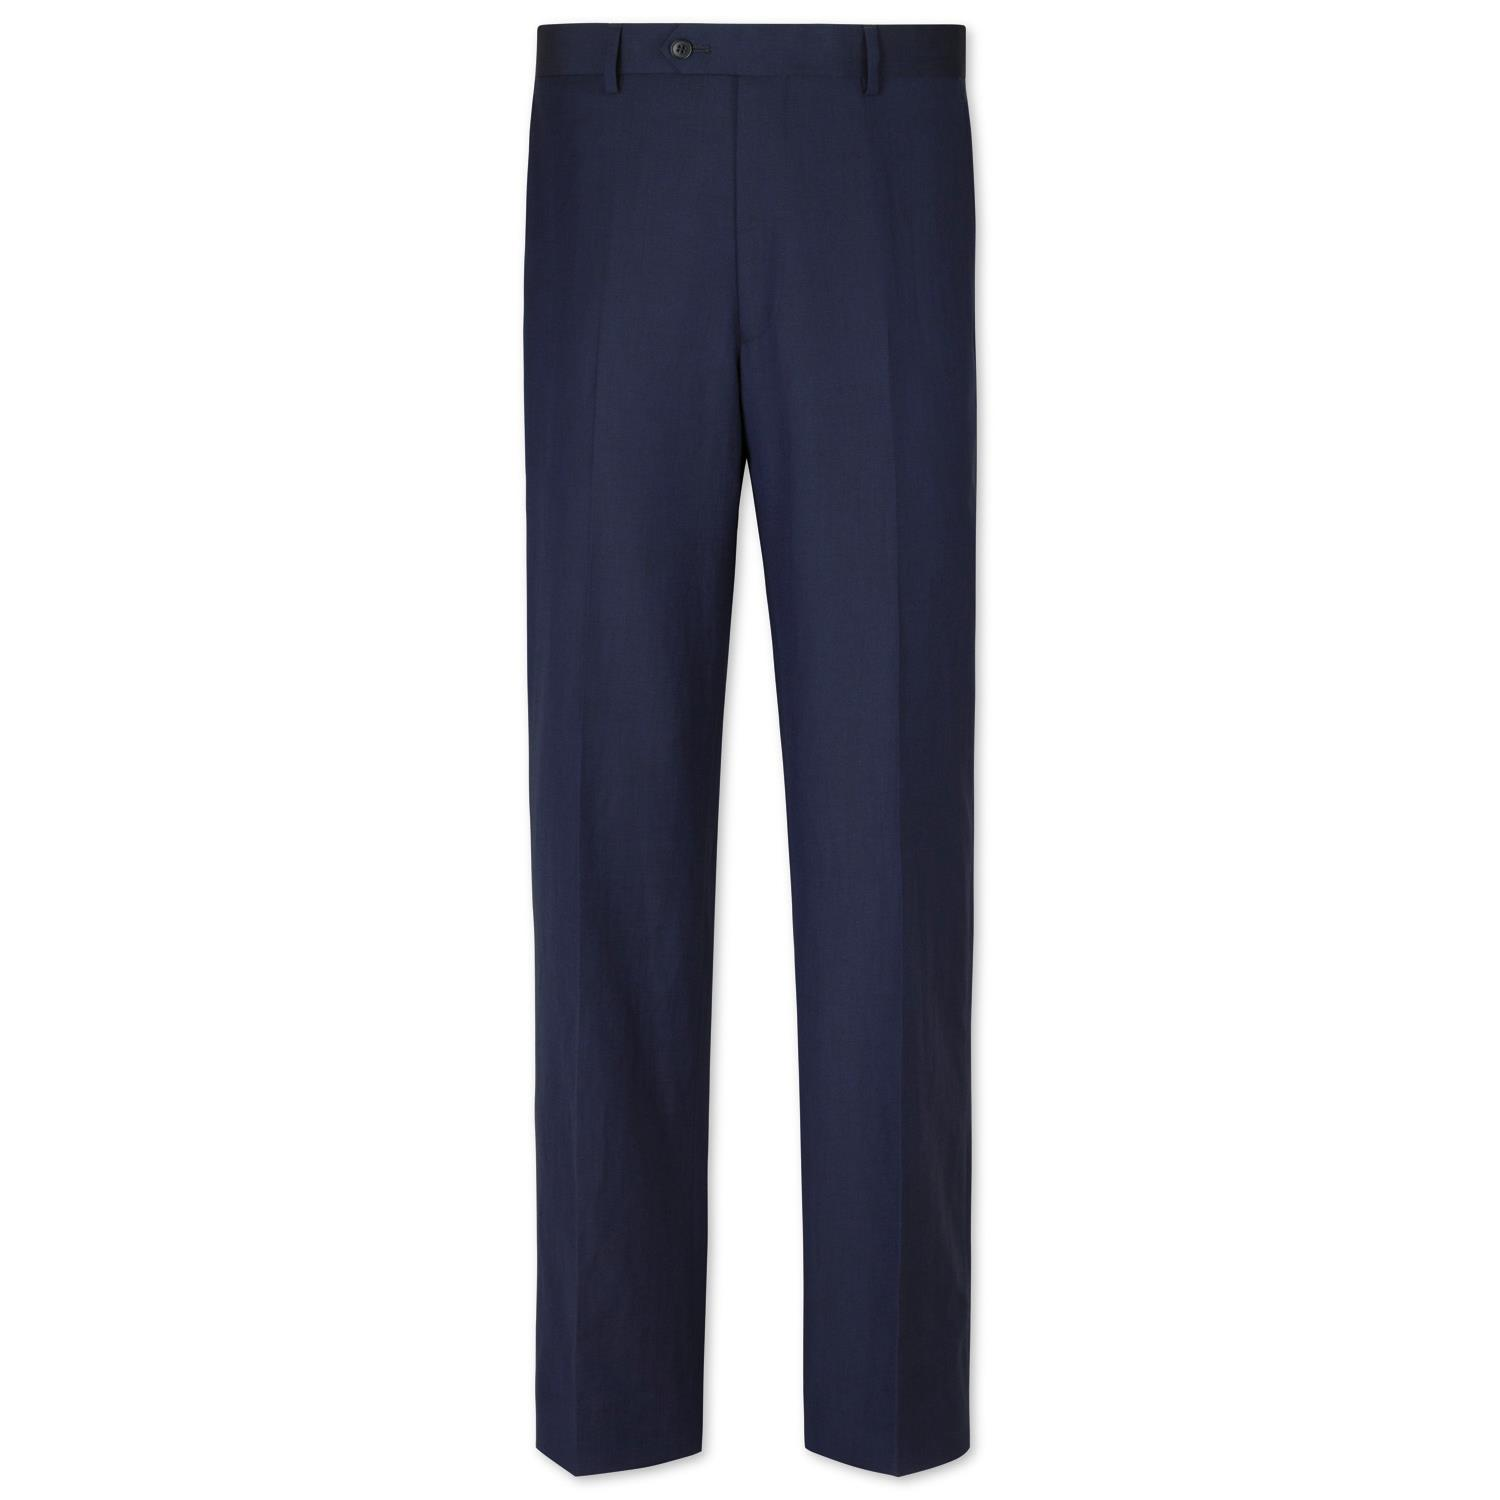 Navy Classic Fit Wool Linen Suit Trousers Size W34 L38 by Charles Tyrwhitt